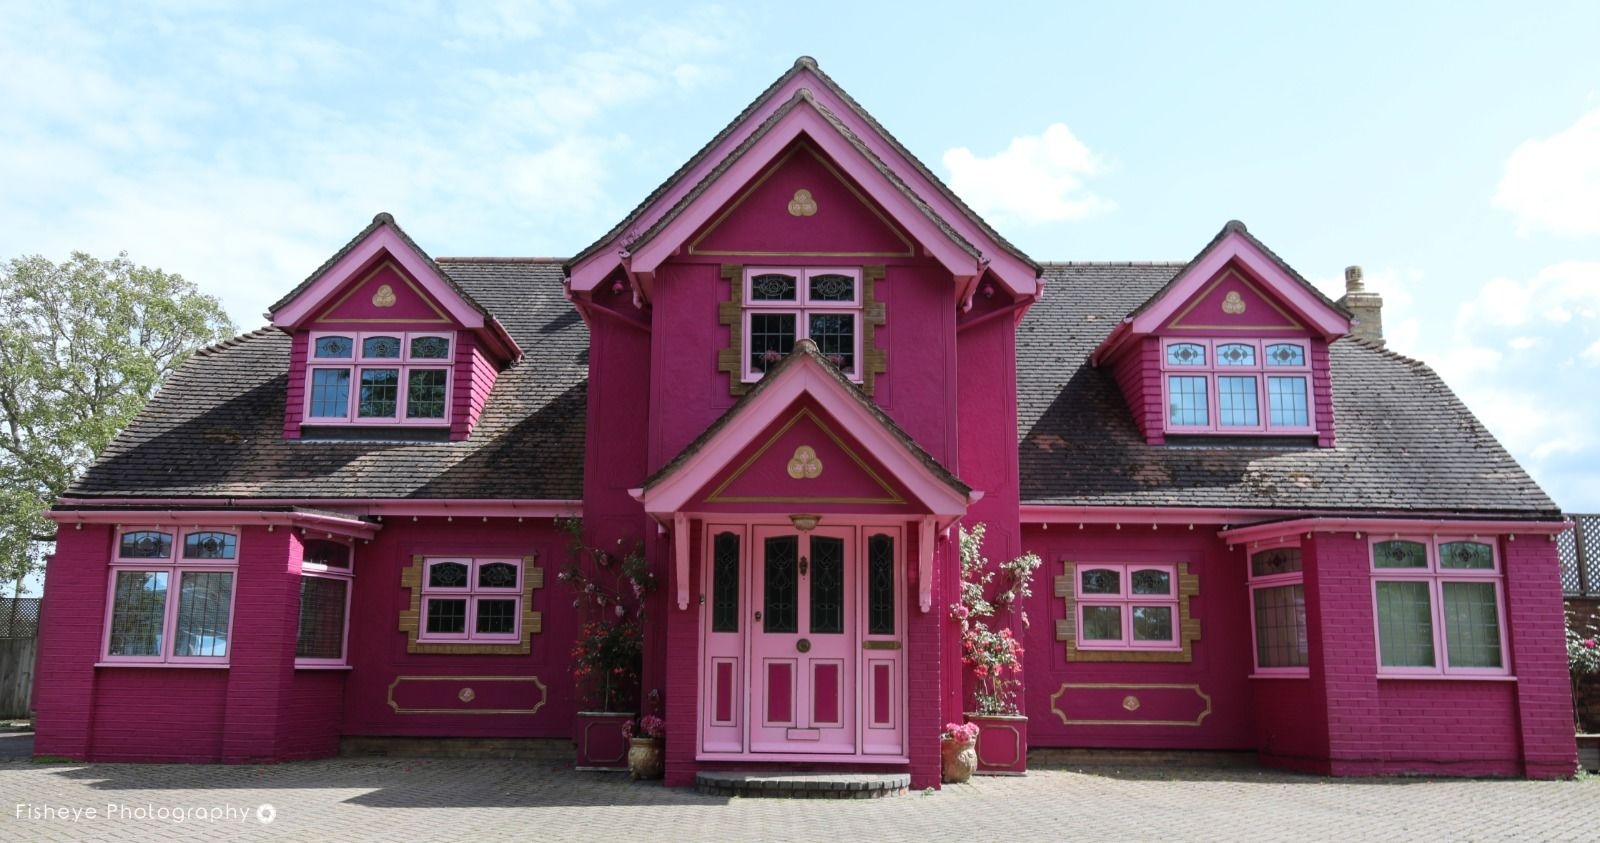 Barbie's House